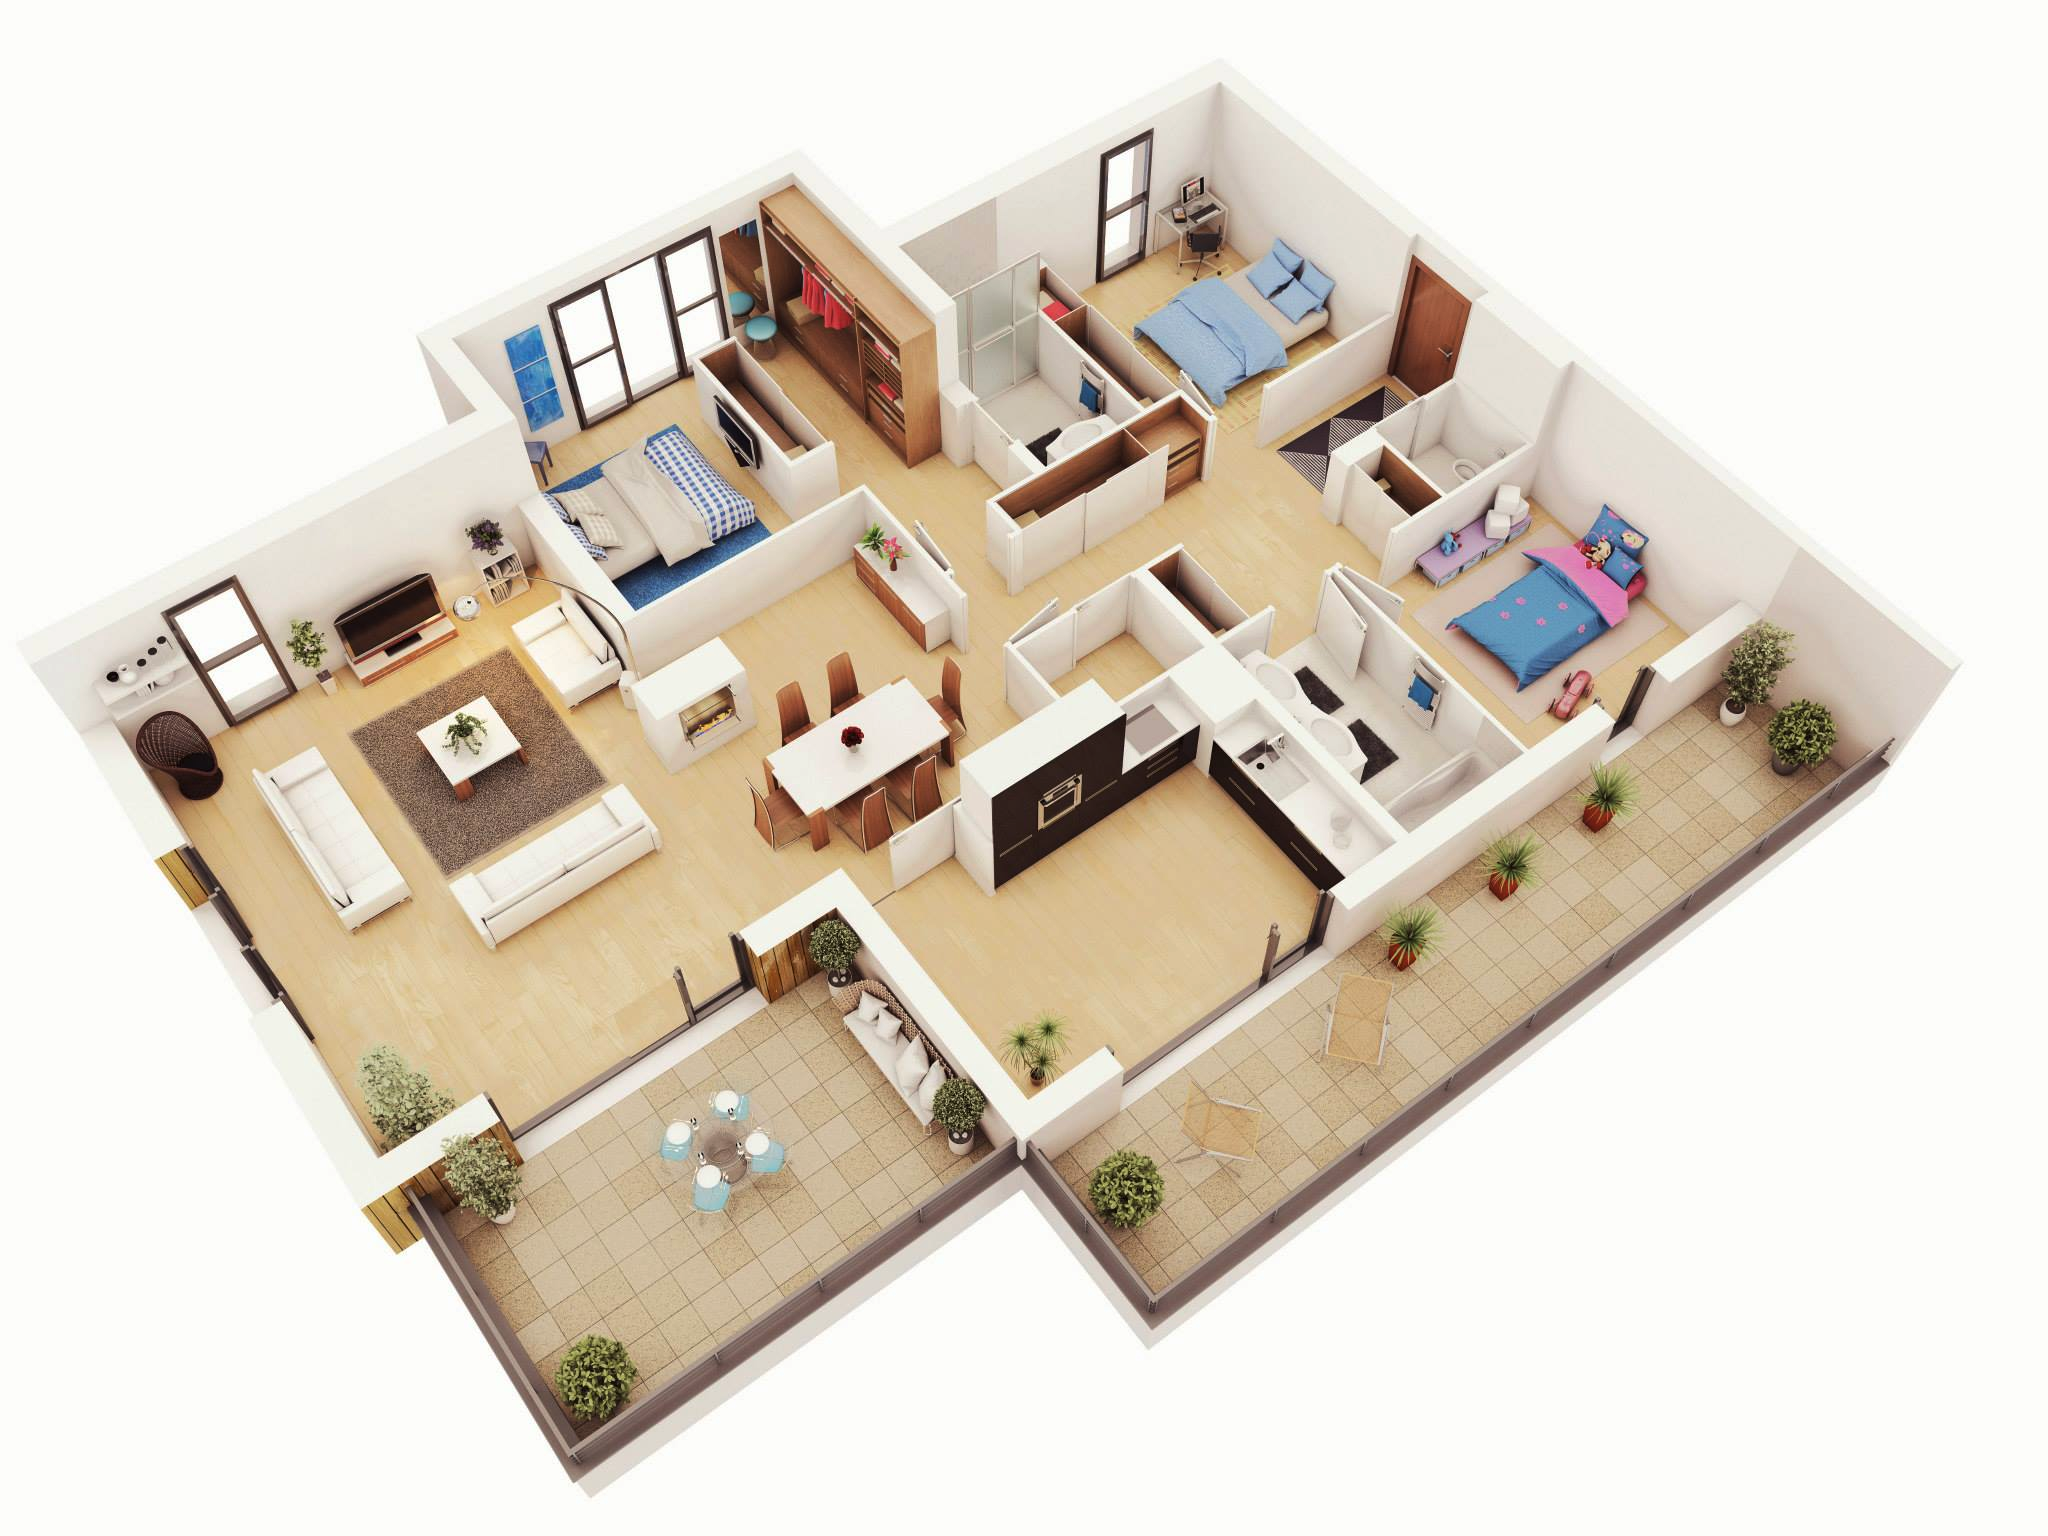 3 Bedroom House Designs Of 25 More 3 Bedroom 3d Floor Plans